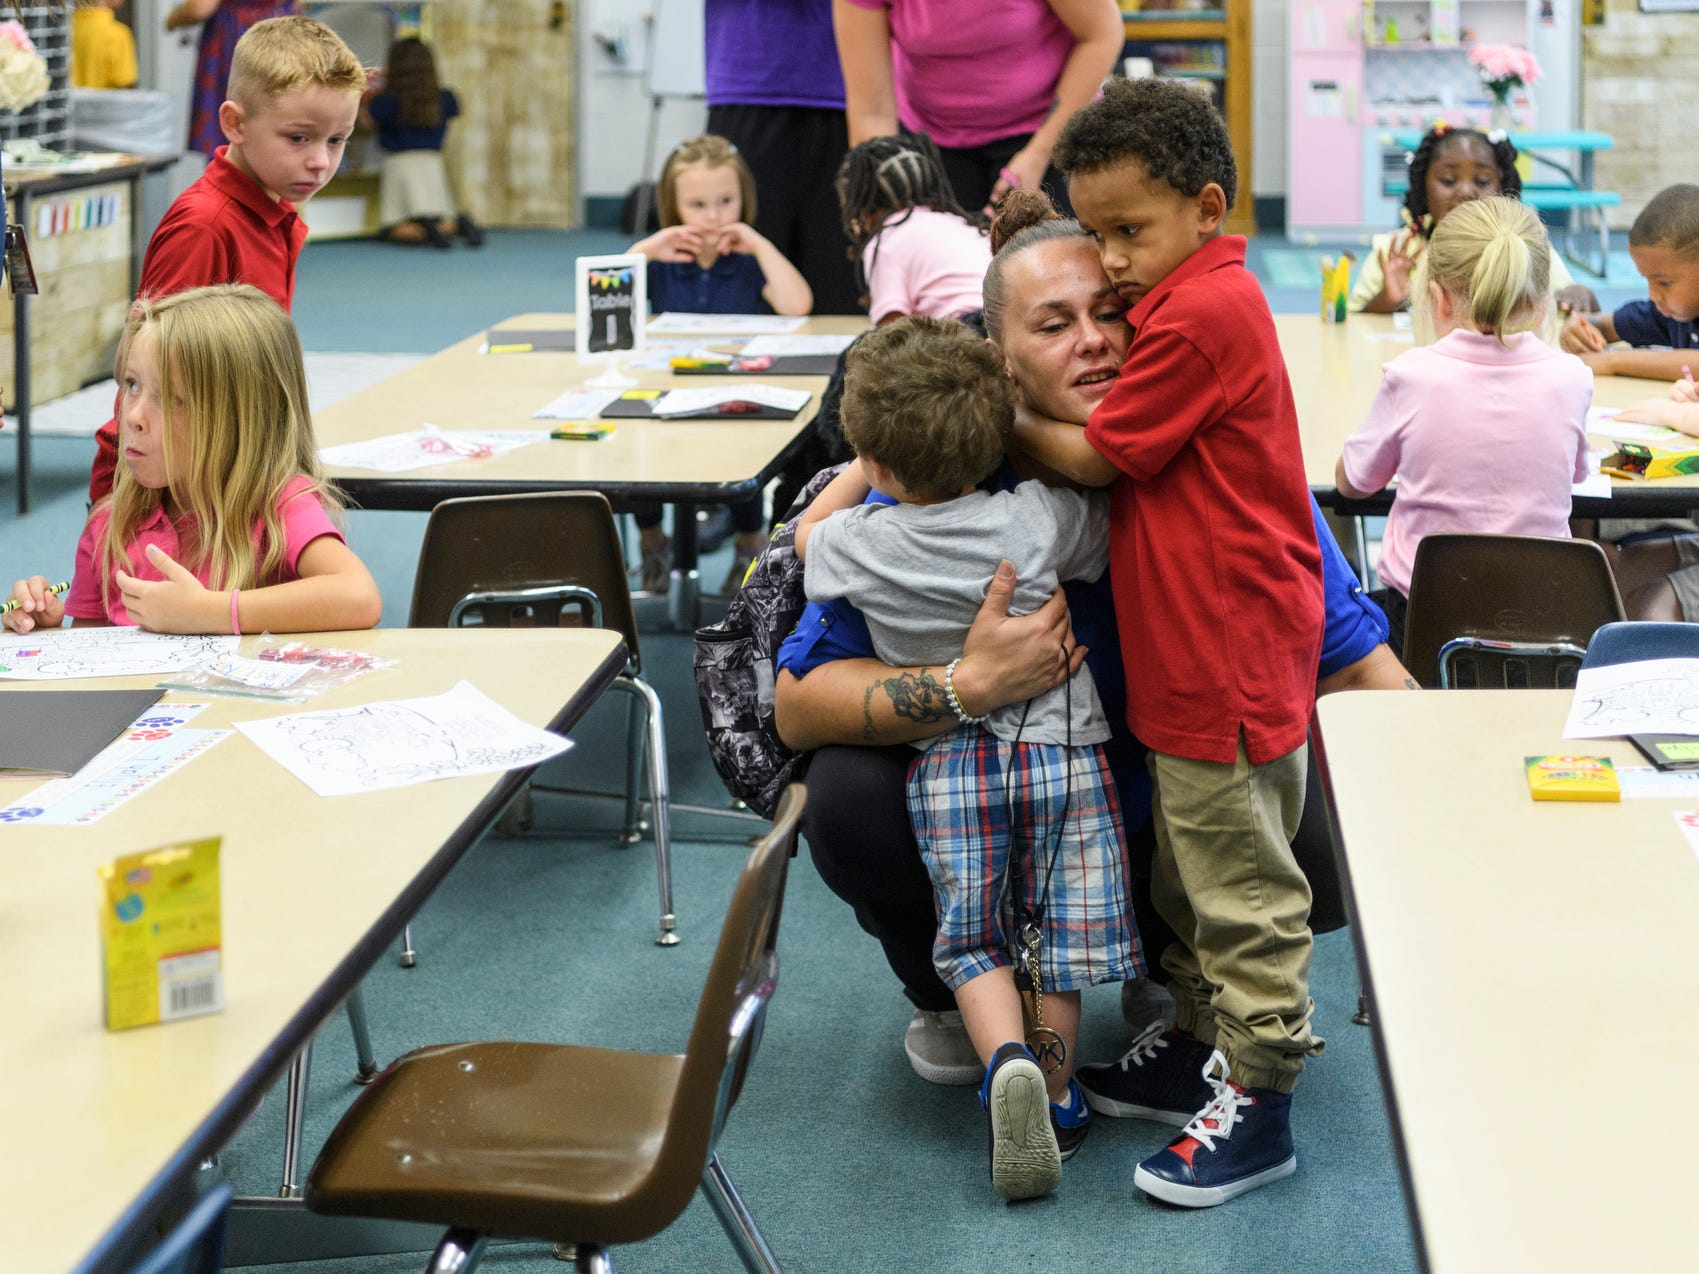 "Amanda Brune, center, hugs her two children Carter Brune, left, and Brayden Thomas, right, before leaving Brayden with kindergarten teacher Brooke Havill, not pictured, on the first day of school at Dexter Elementary School in Evansville, Ind., Wednesday, Aug. 8, 2018. ""He has been very excited for school so once he settles in he will be just fine,"" Brune said, as she left the classroom."